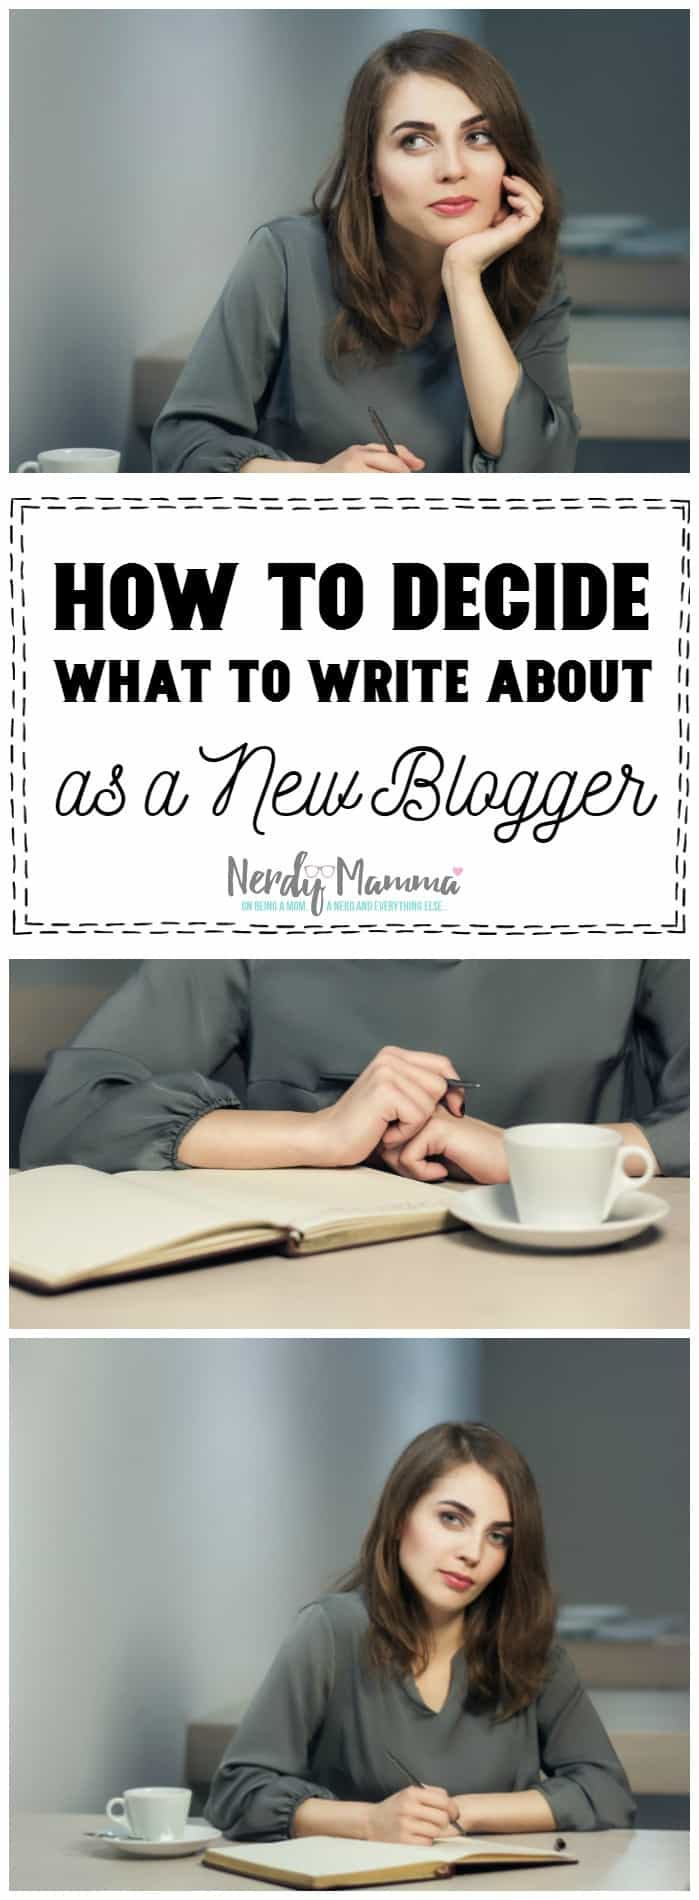 When you start blogging, it's hard to think of things to write about. After a while, you have SOO many ideas. This is a great post to start with and decide what you want to write about as a new blogger.